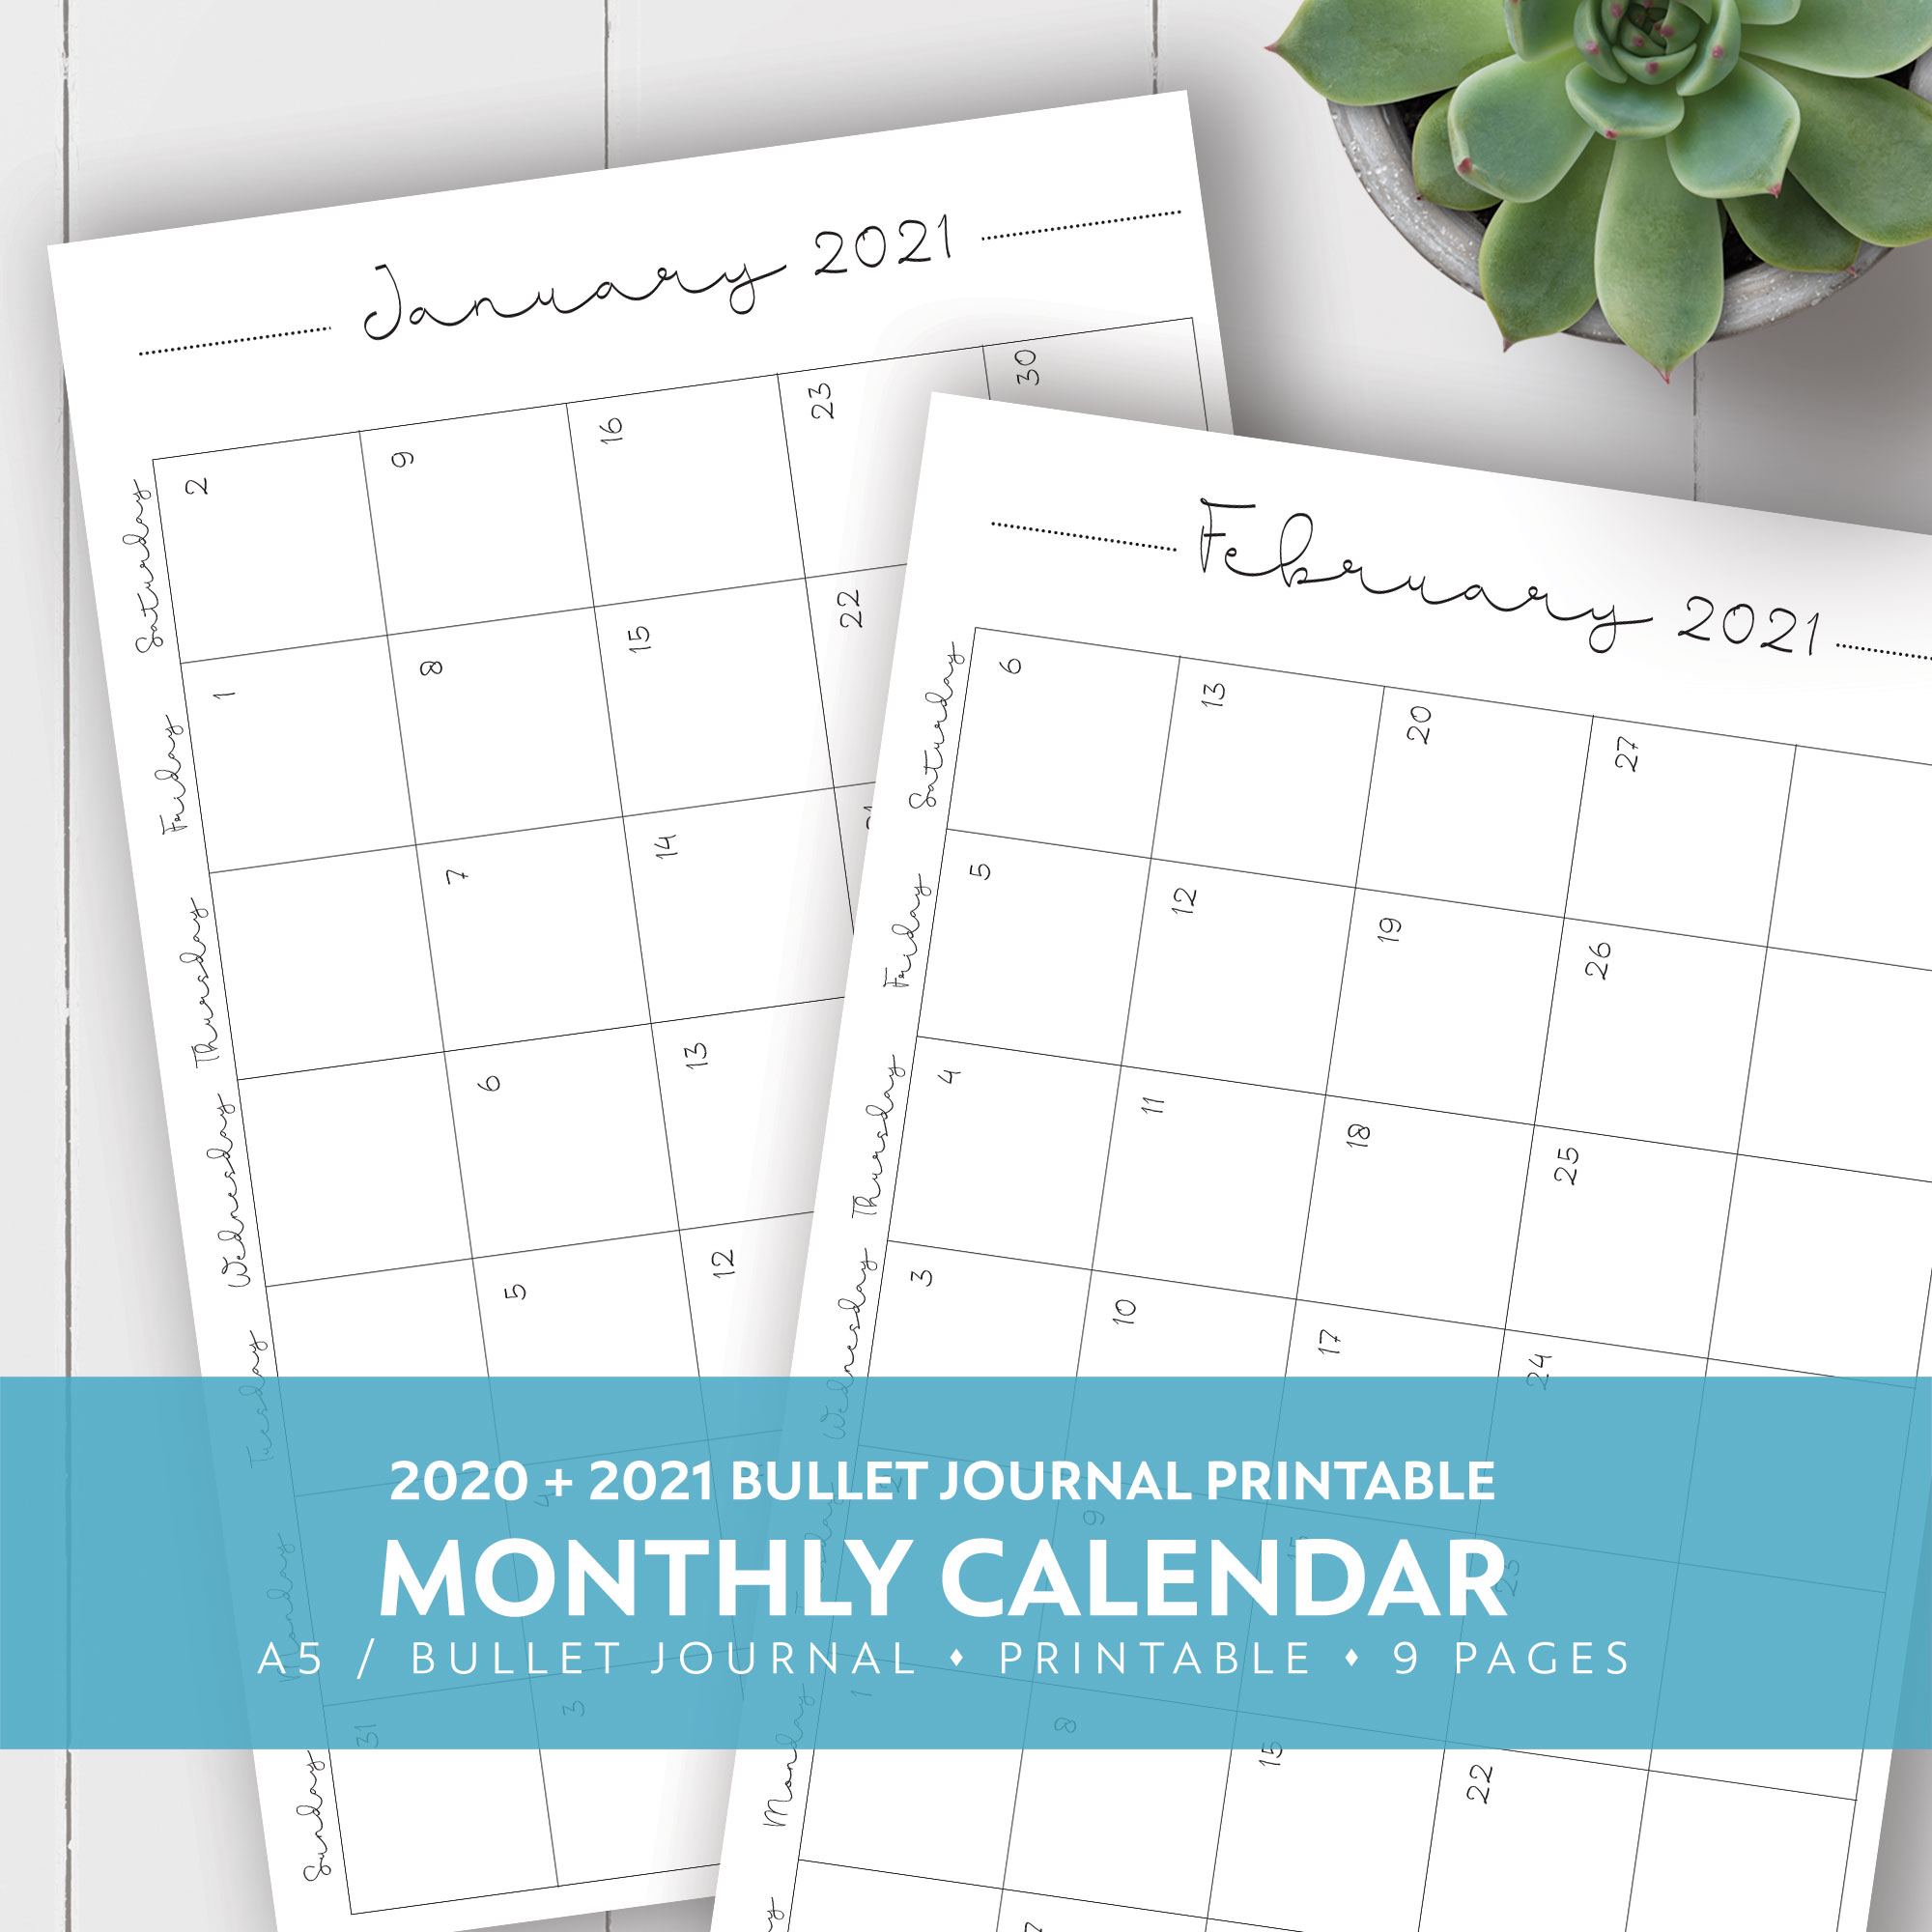 2020 + 2021 Monthly Printable Calendar within Hunting Season: Calendar 2021 Monthly